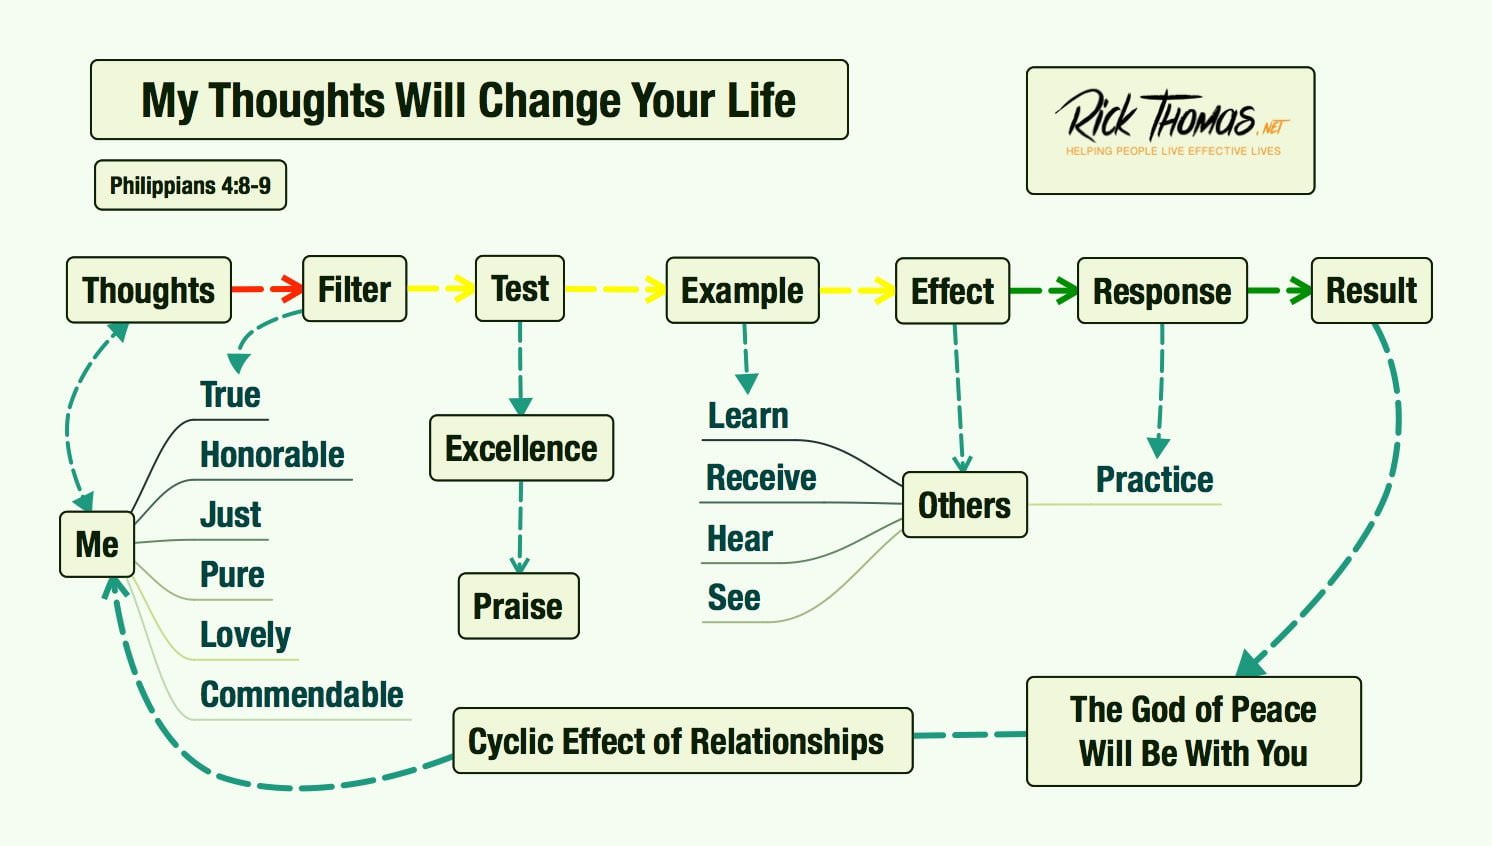 Strategy to change your life and relationships